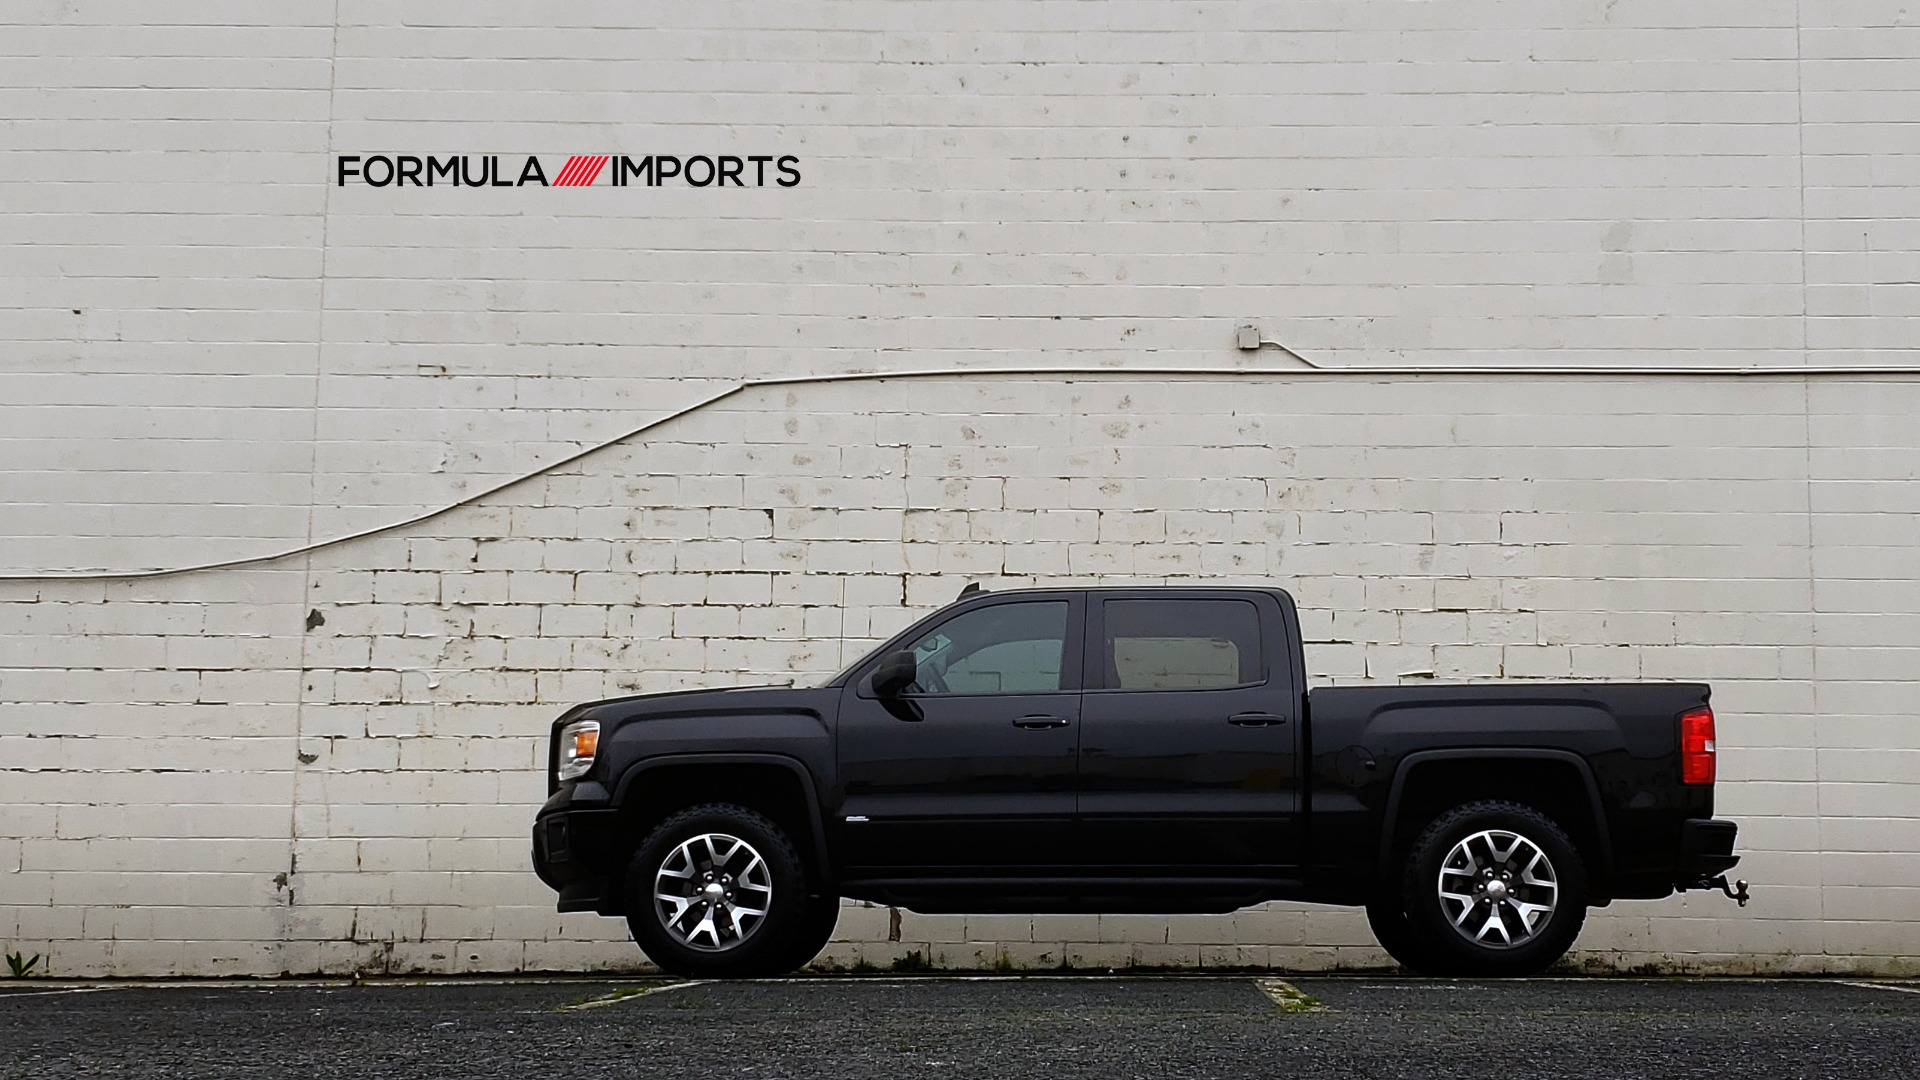 Used 2015 GMC SIERRA 1500 SLT 4WD CREW CAB / 6.2L V8 / NAV / BOSE / REARVIEW for sale Sold at Formula Imports in Charlotte NC 28227 93